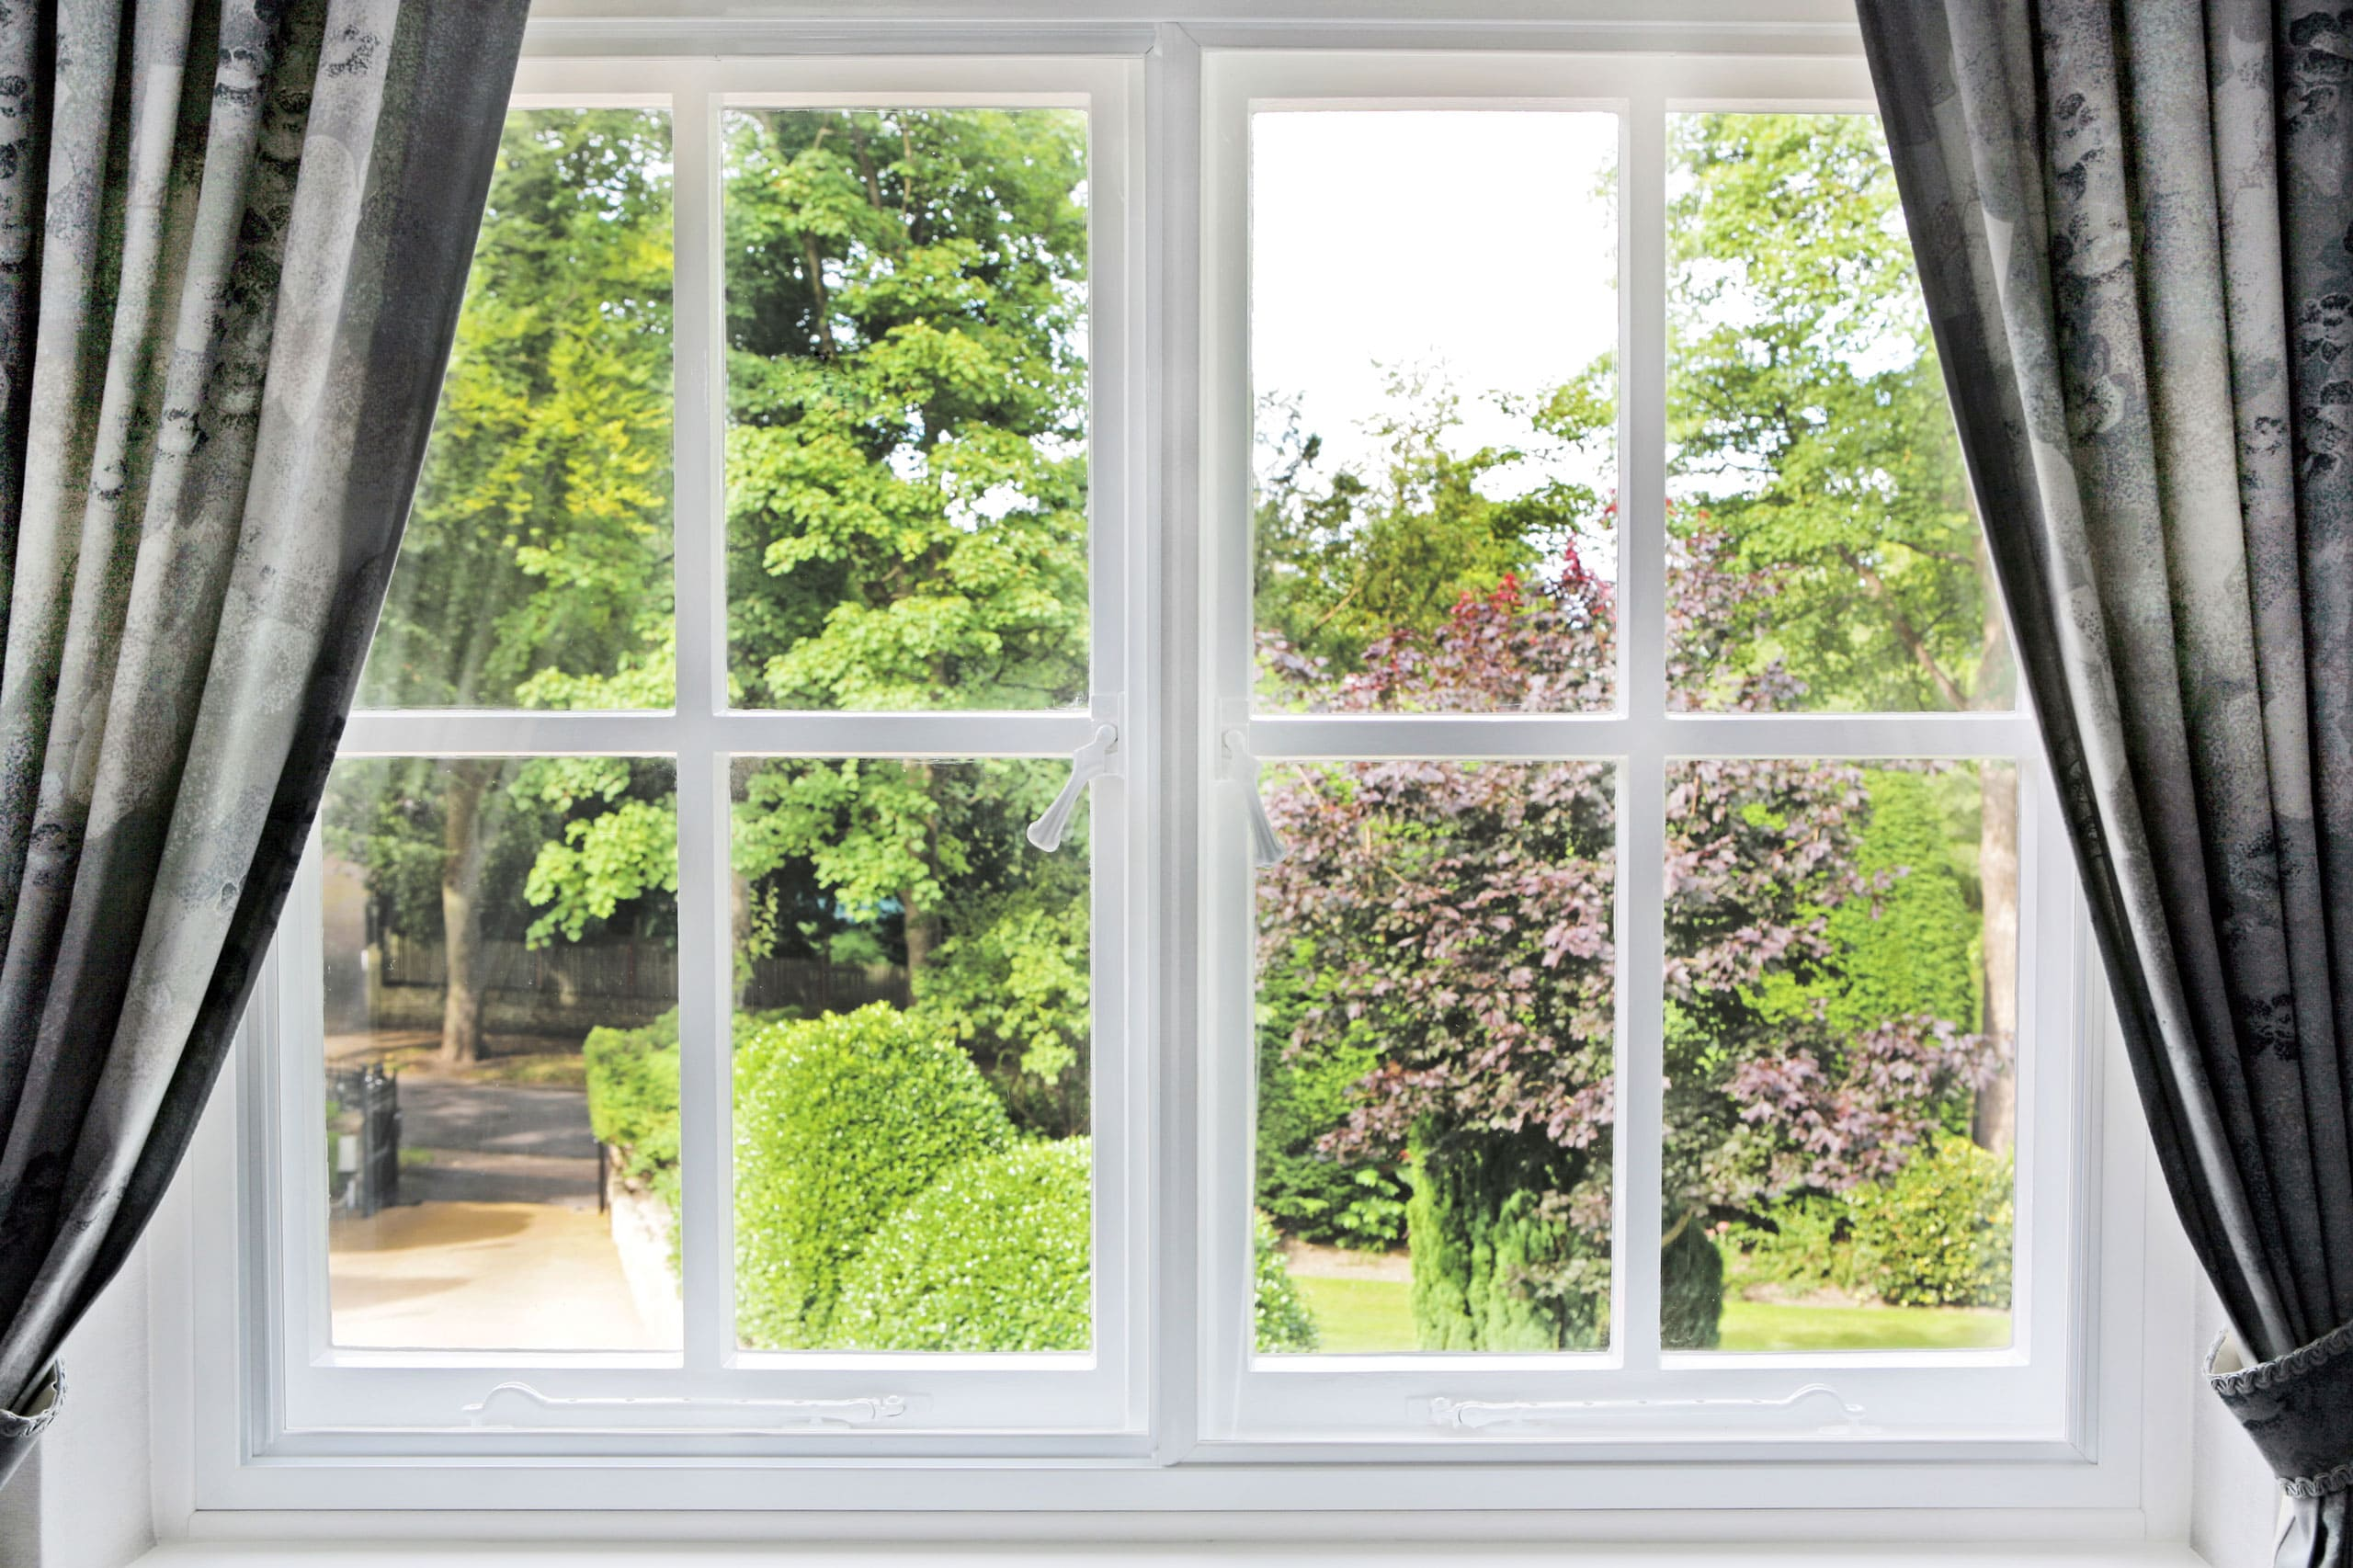 Home fitted with Granada Secondary Glazing